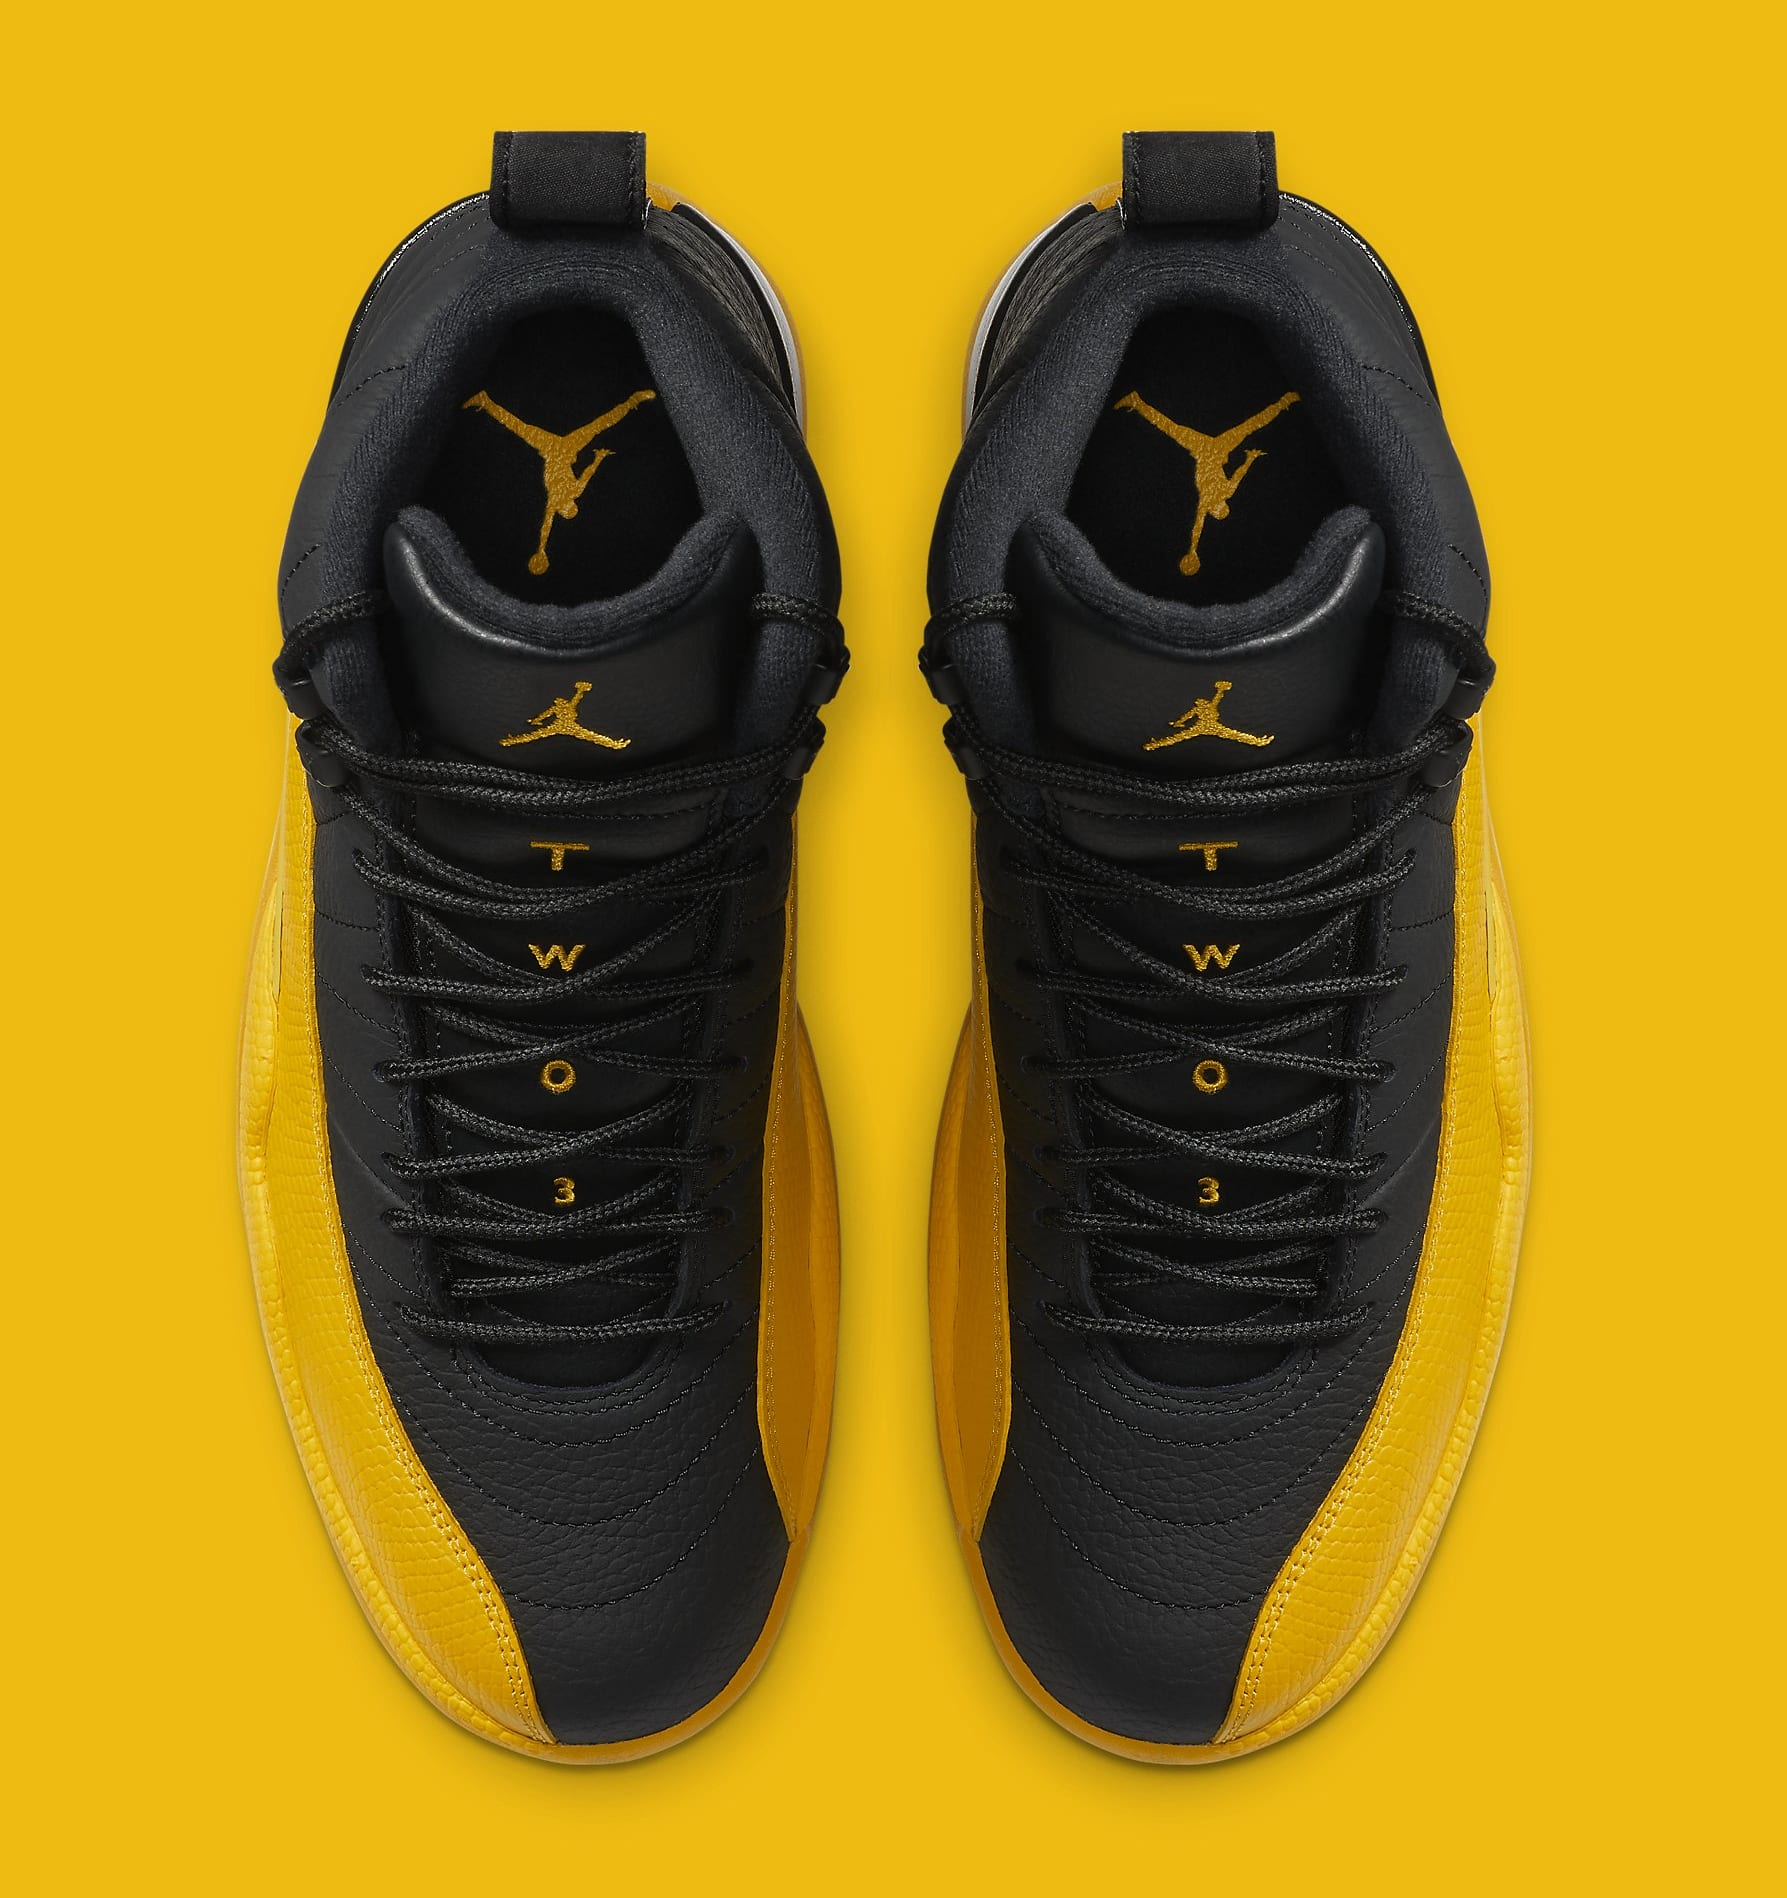 Air Jordan 12 Black University Gold Release Date 130690 070 Sole